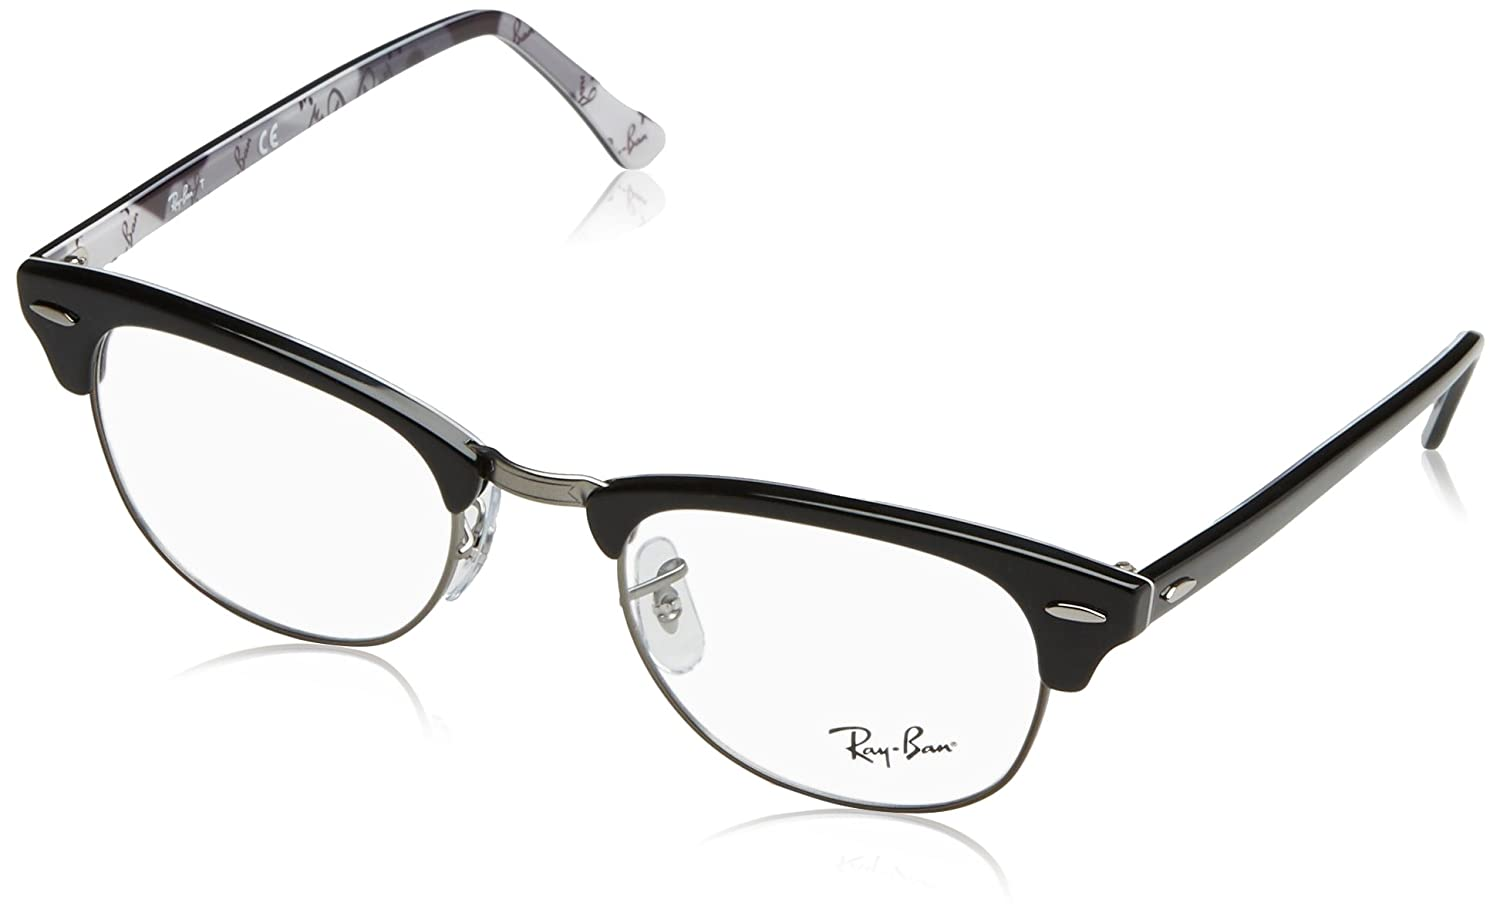 98635a9636f0f Amazon.com  Ray-Ban Clubmaster No Polarization Square Prescription Eyewear  Frame